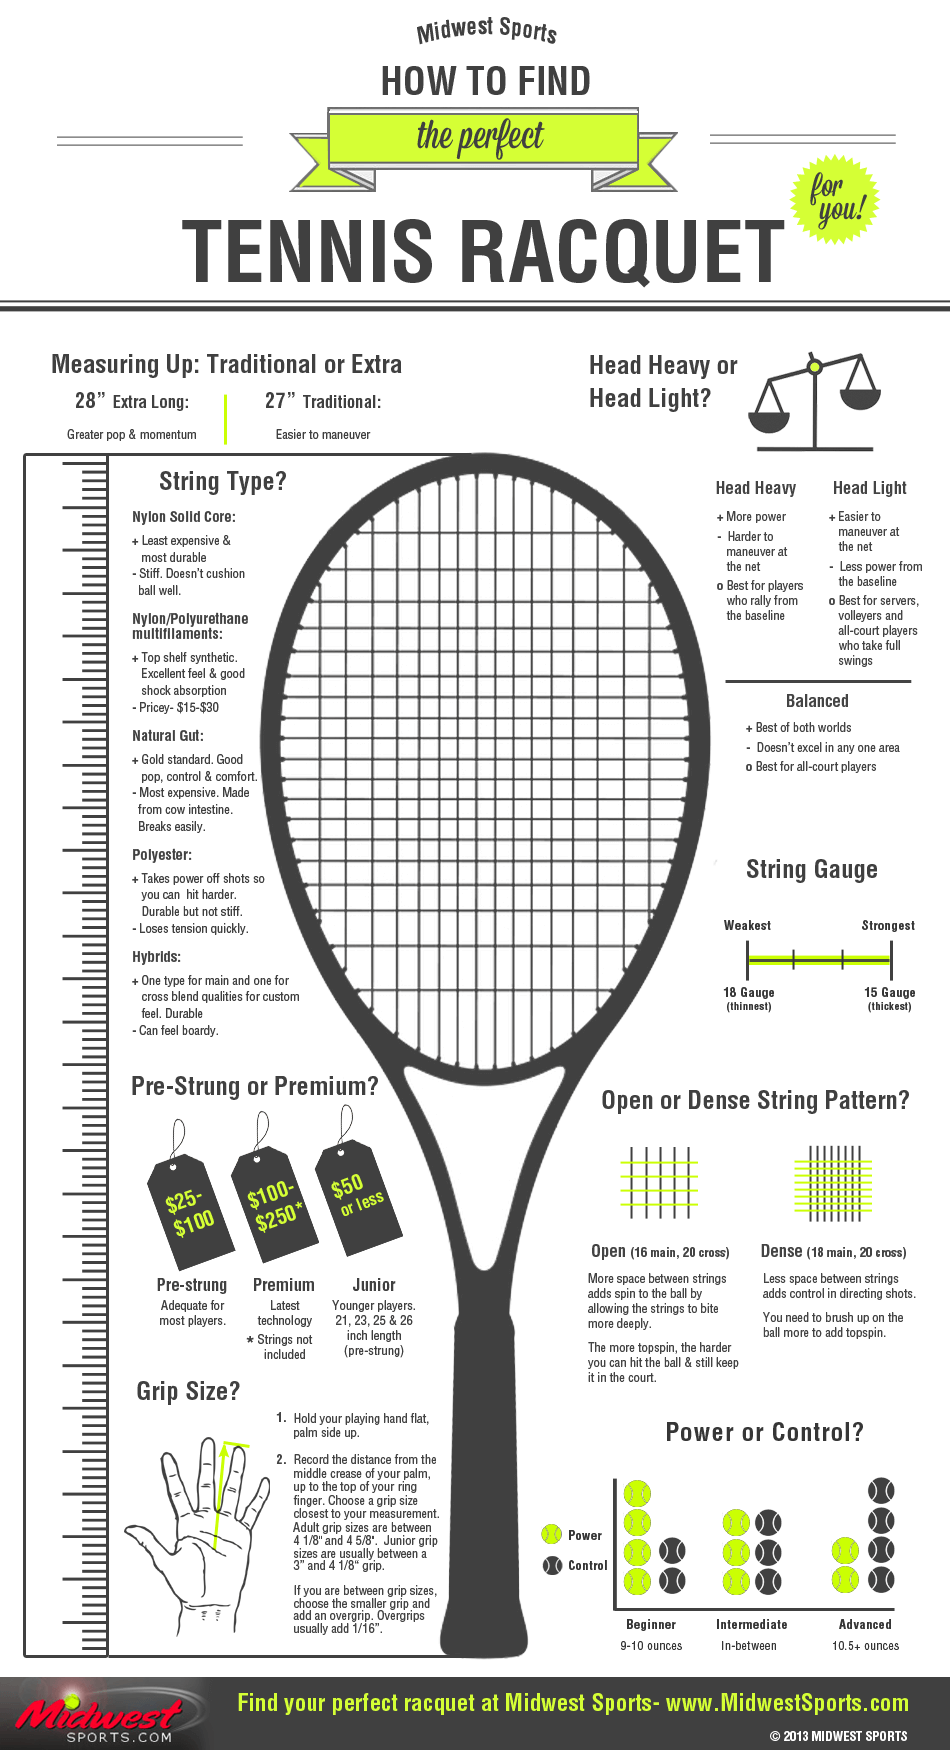 how to find the perfect tennis racquet infographic midwest sports rh midwestsports com